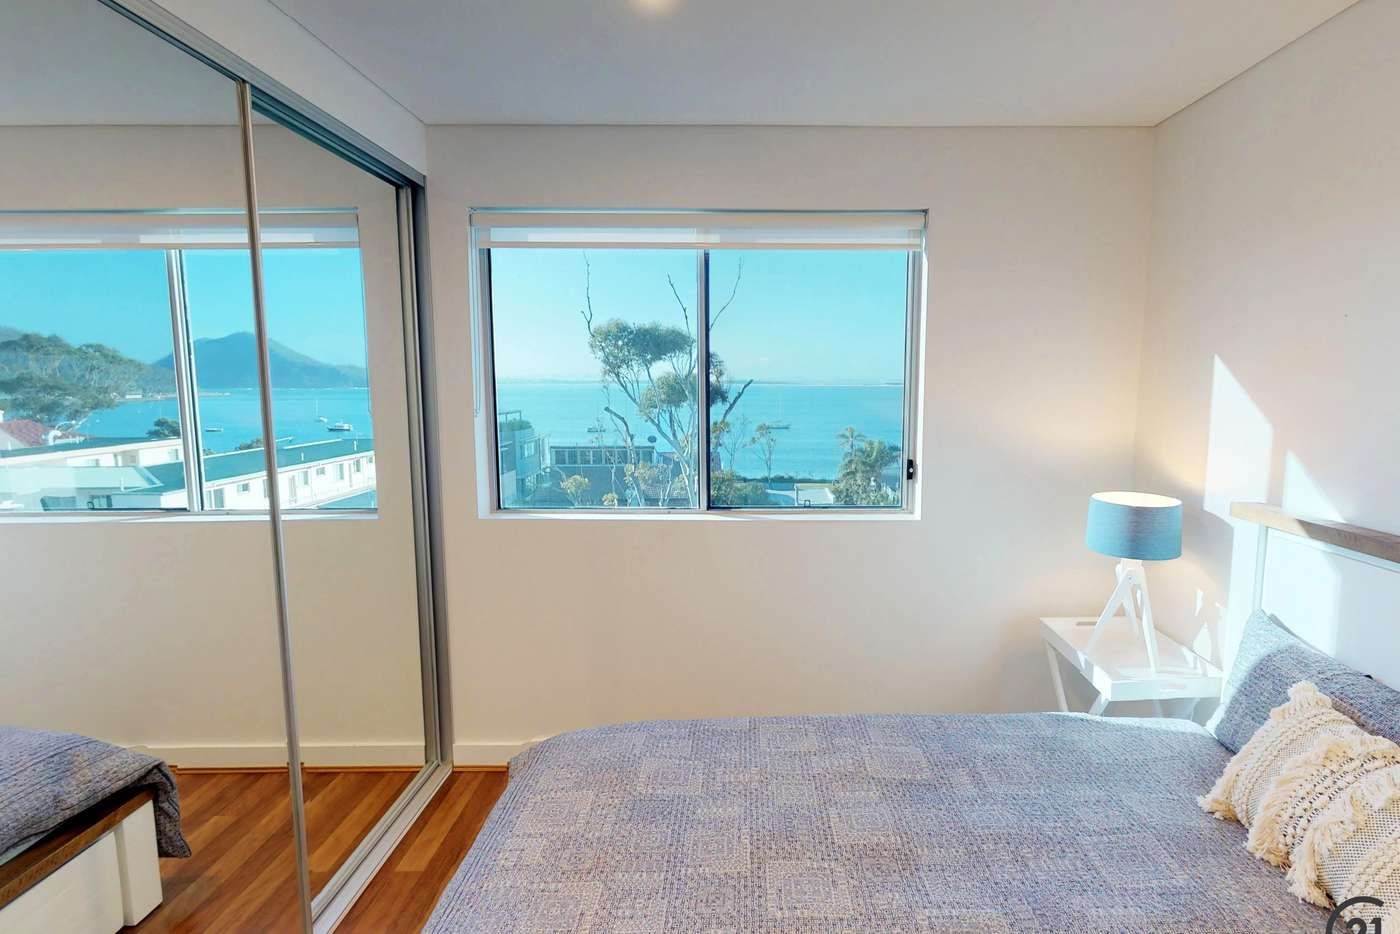 Main view of Homely apartment listing, 505/4-6 Bullecourt Street, Shoal Bay NSW 2315